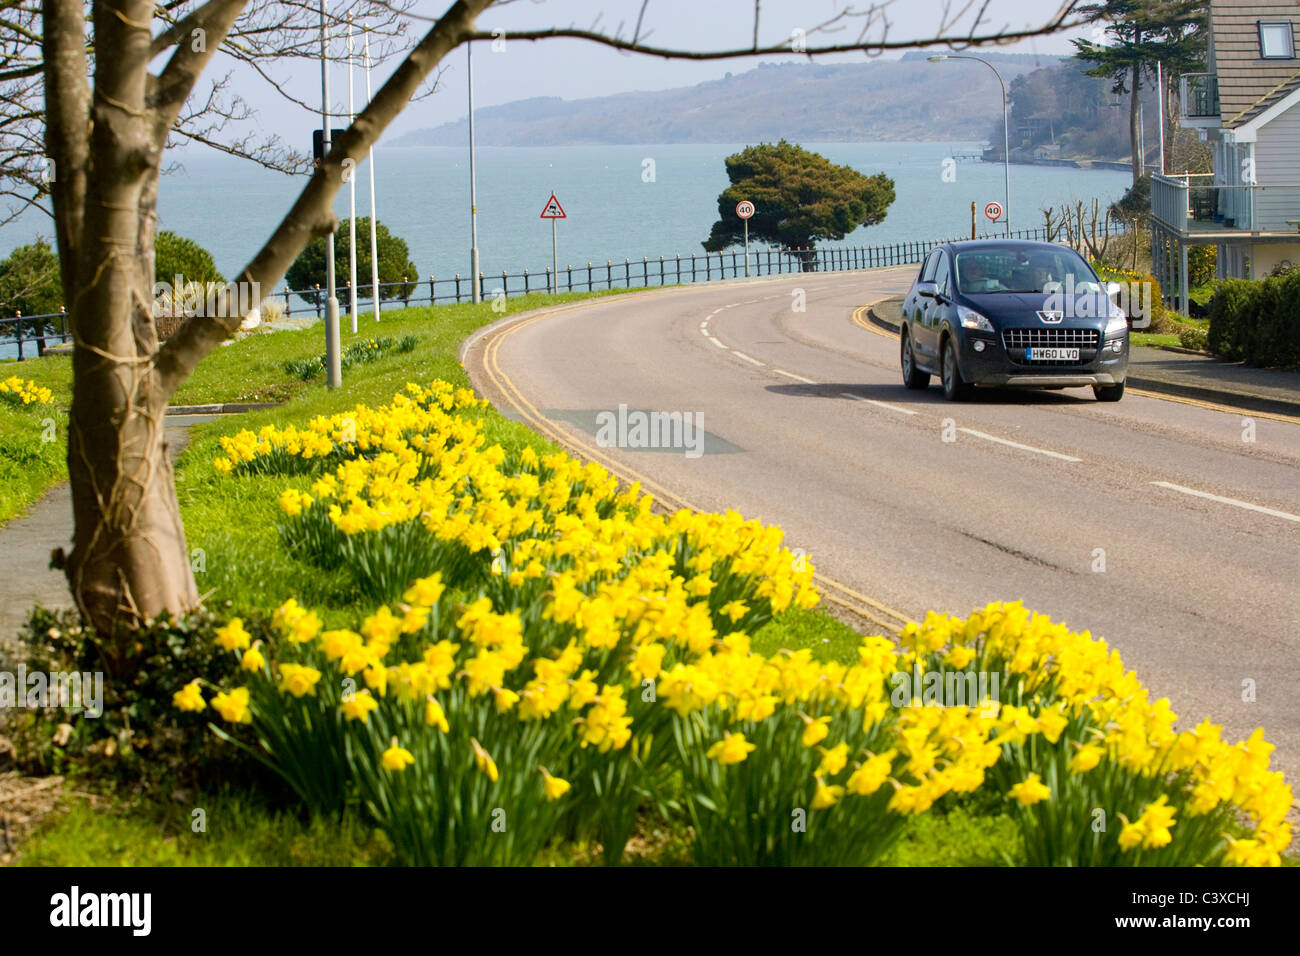 Causeway, Tennyson Road, Yarmouth, Isle of Wight, UK - Stock Image